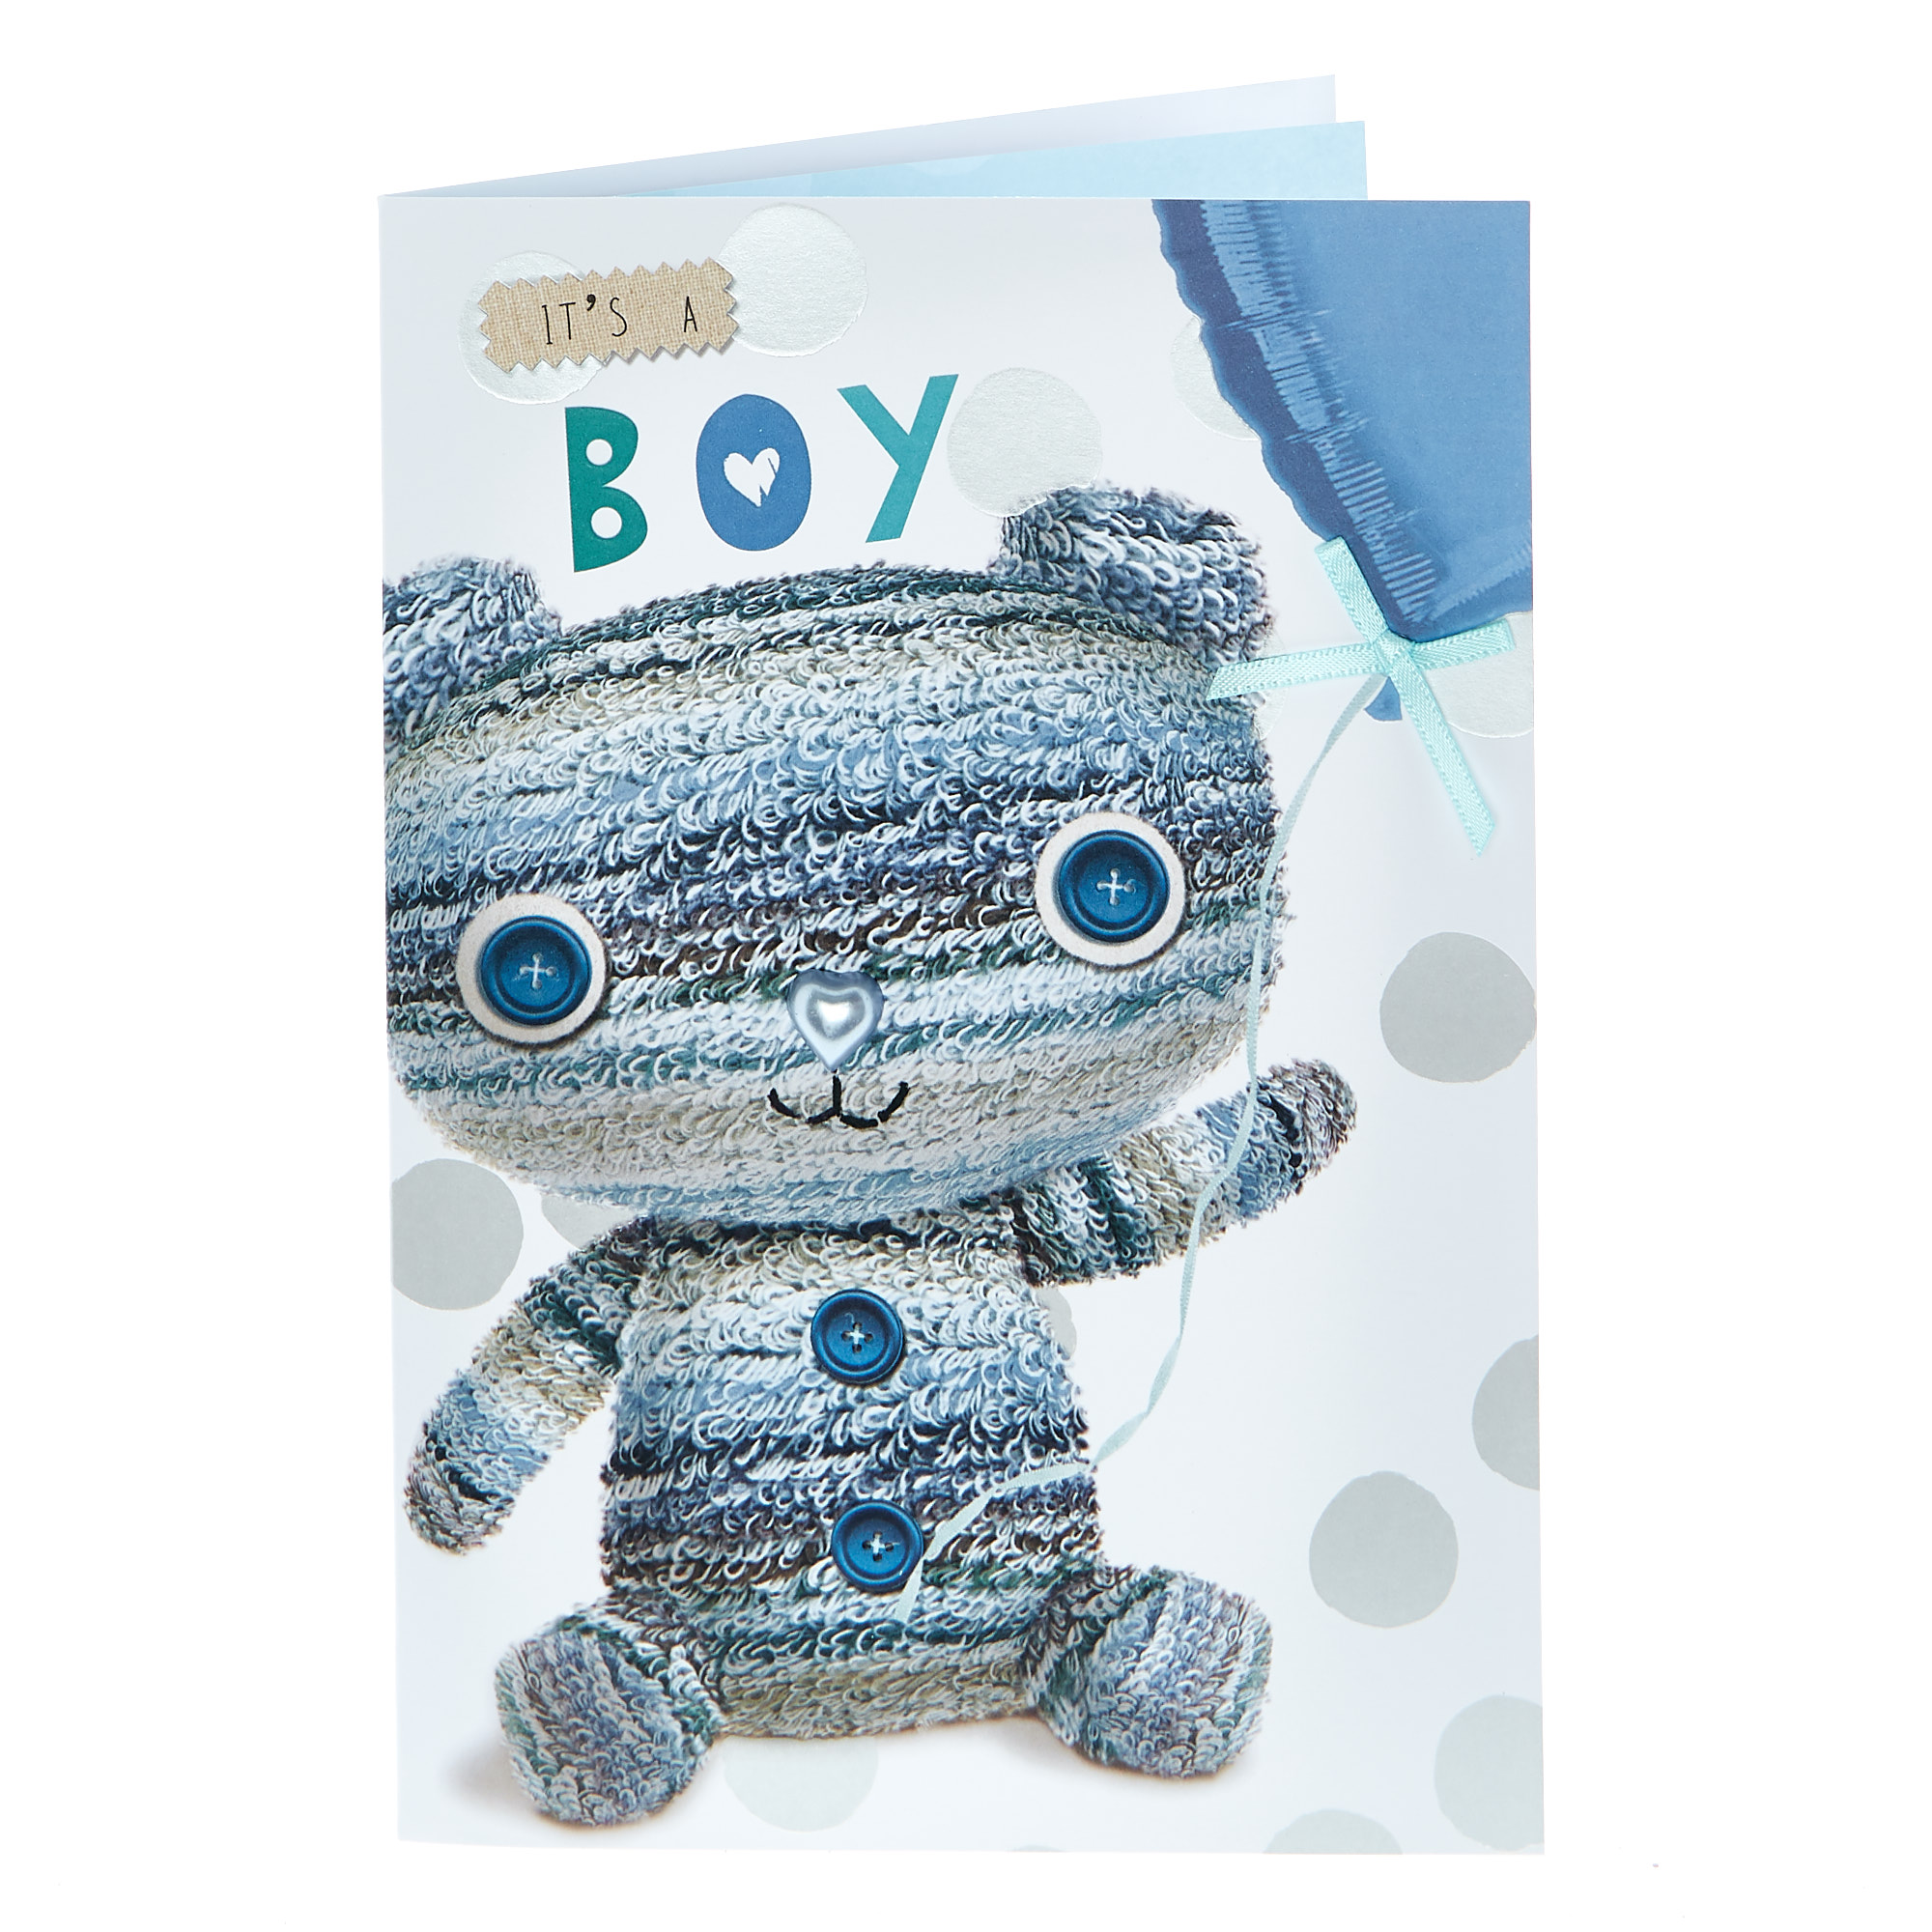 New Baby Card - It's A Boy